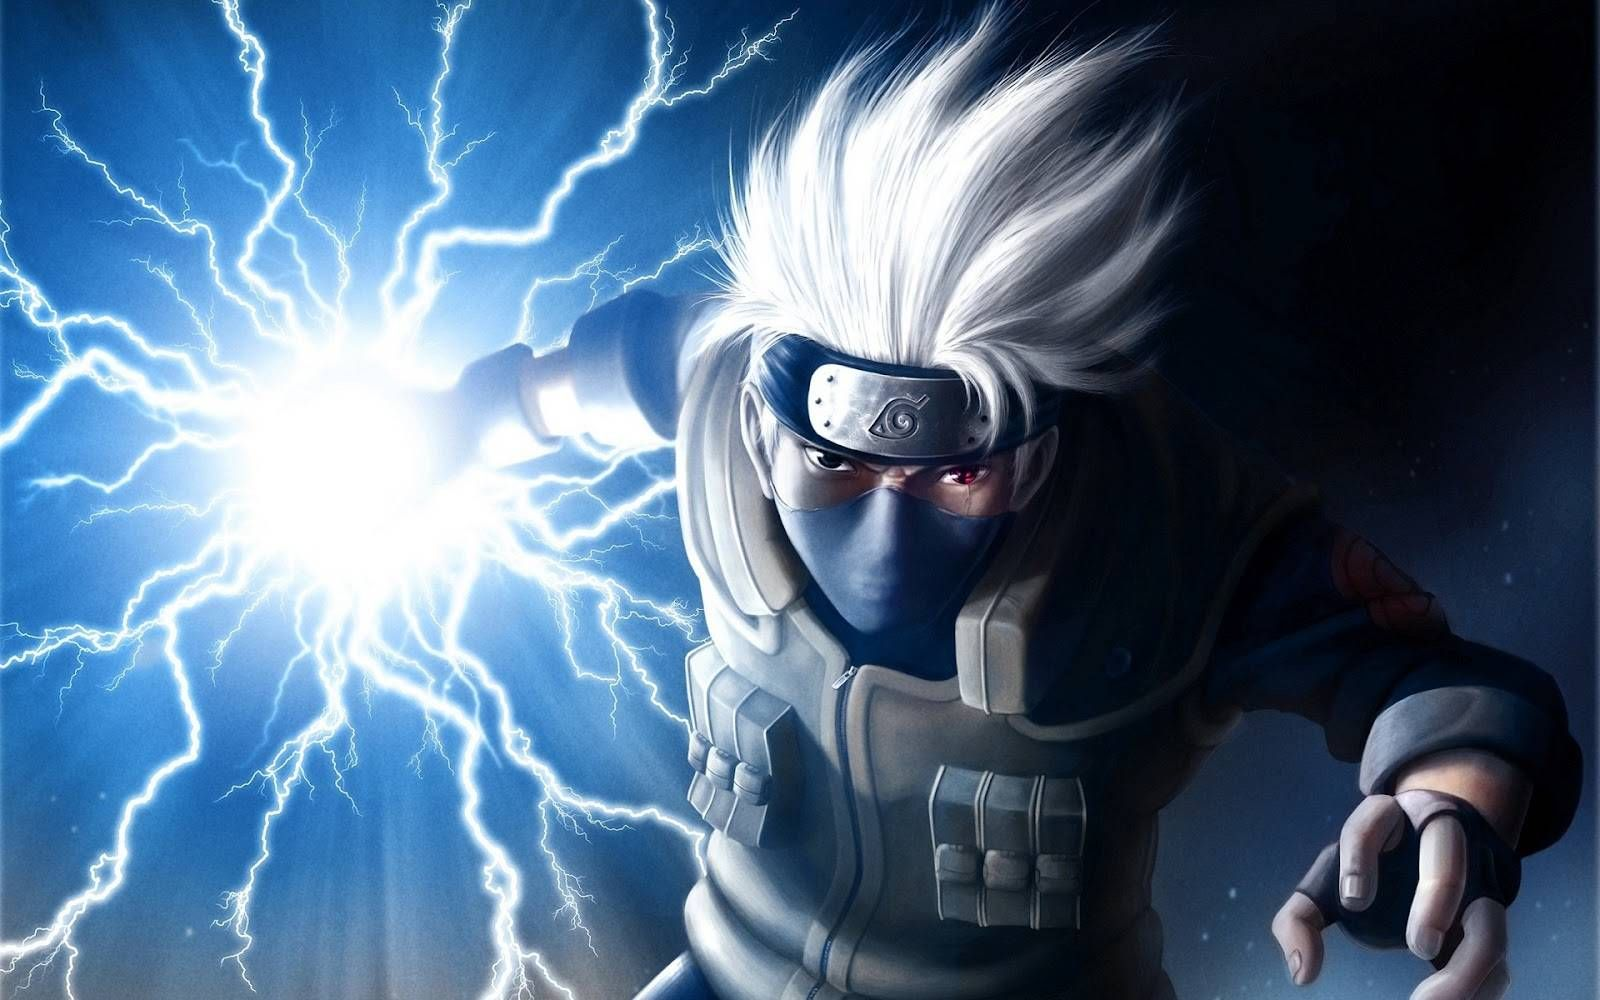 naruto shippuden 3d wallpapers hd images #2198933 - dongkoy